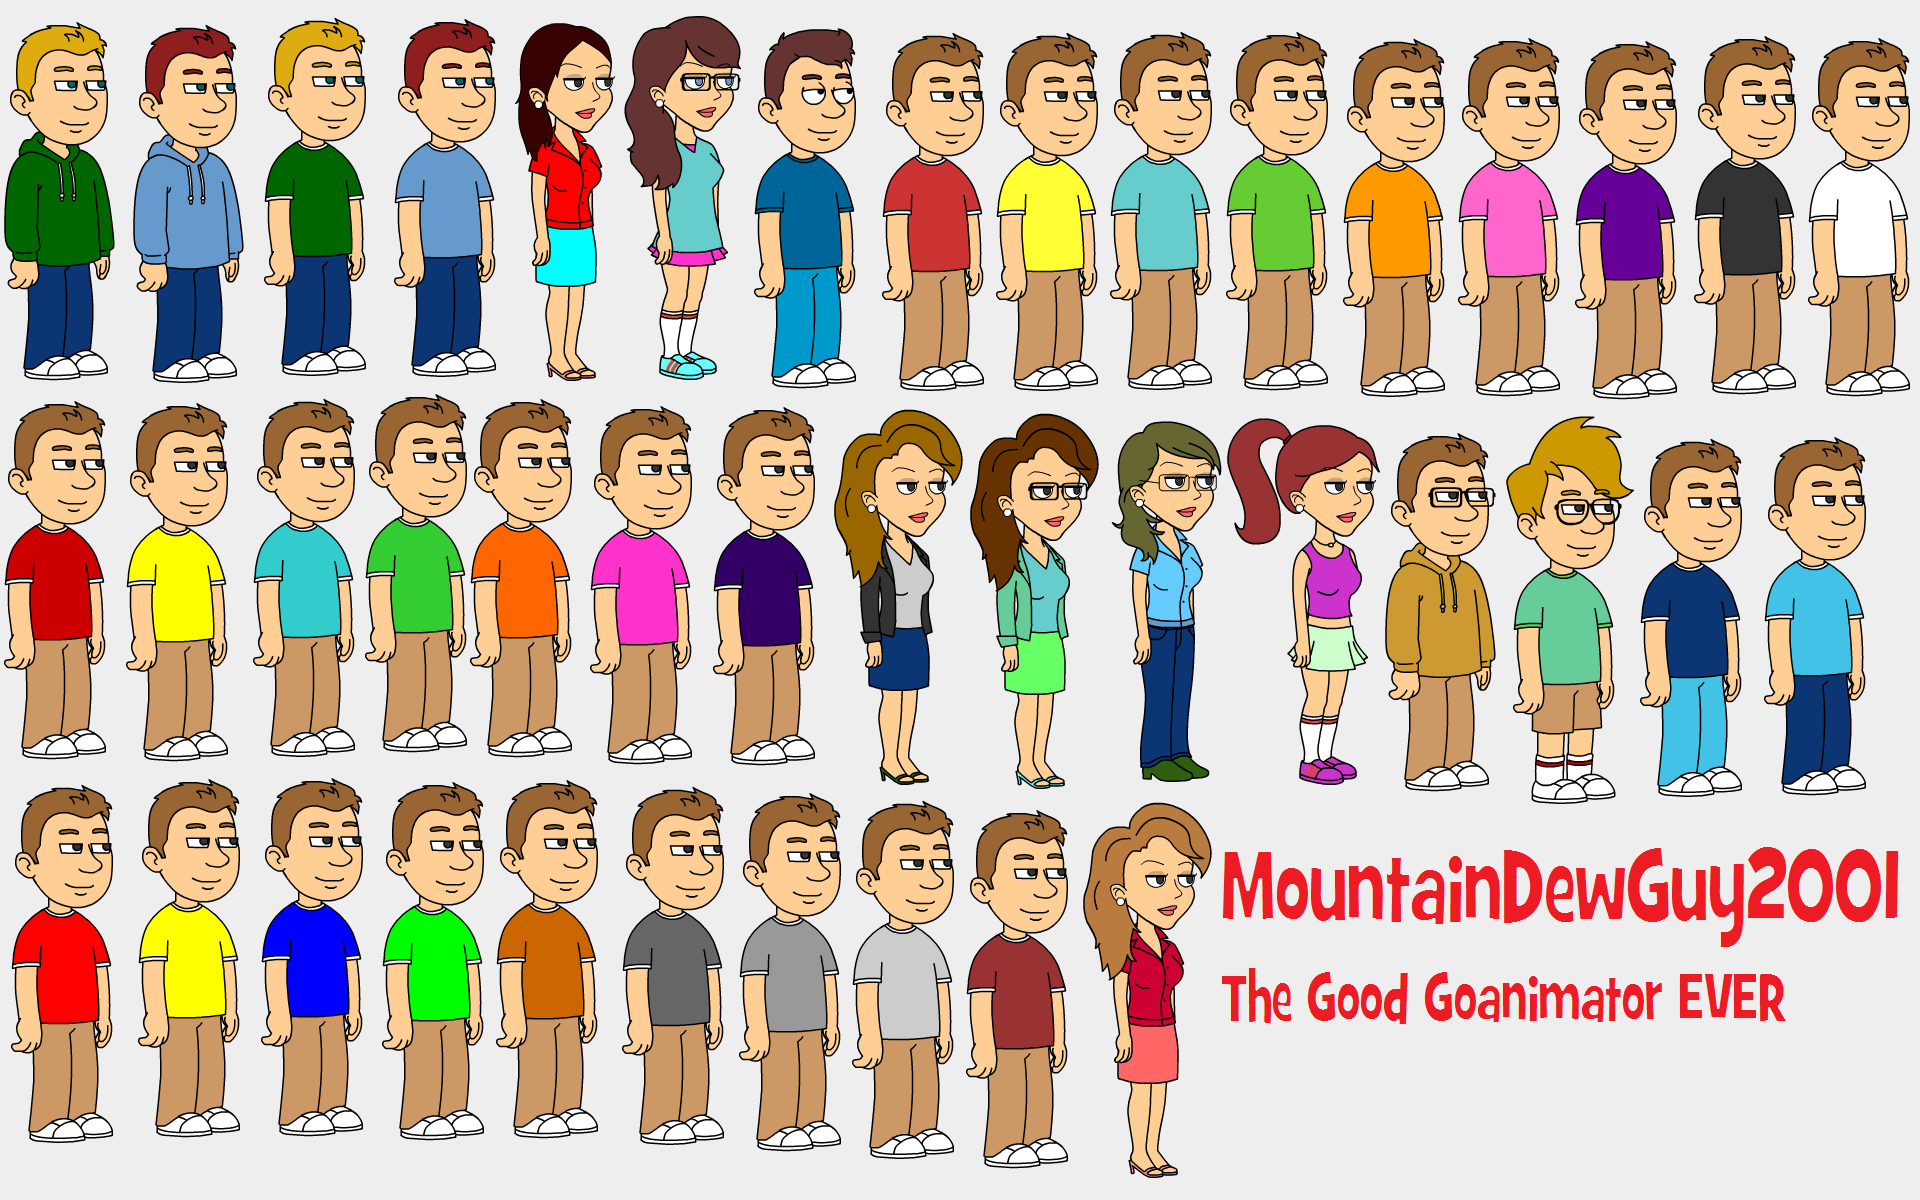 Goanimate images MountainDewGuy Wallpaper HD wallpaper and background ...